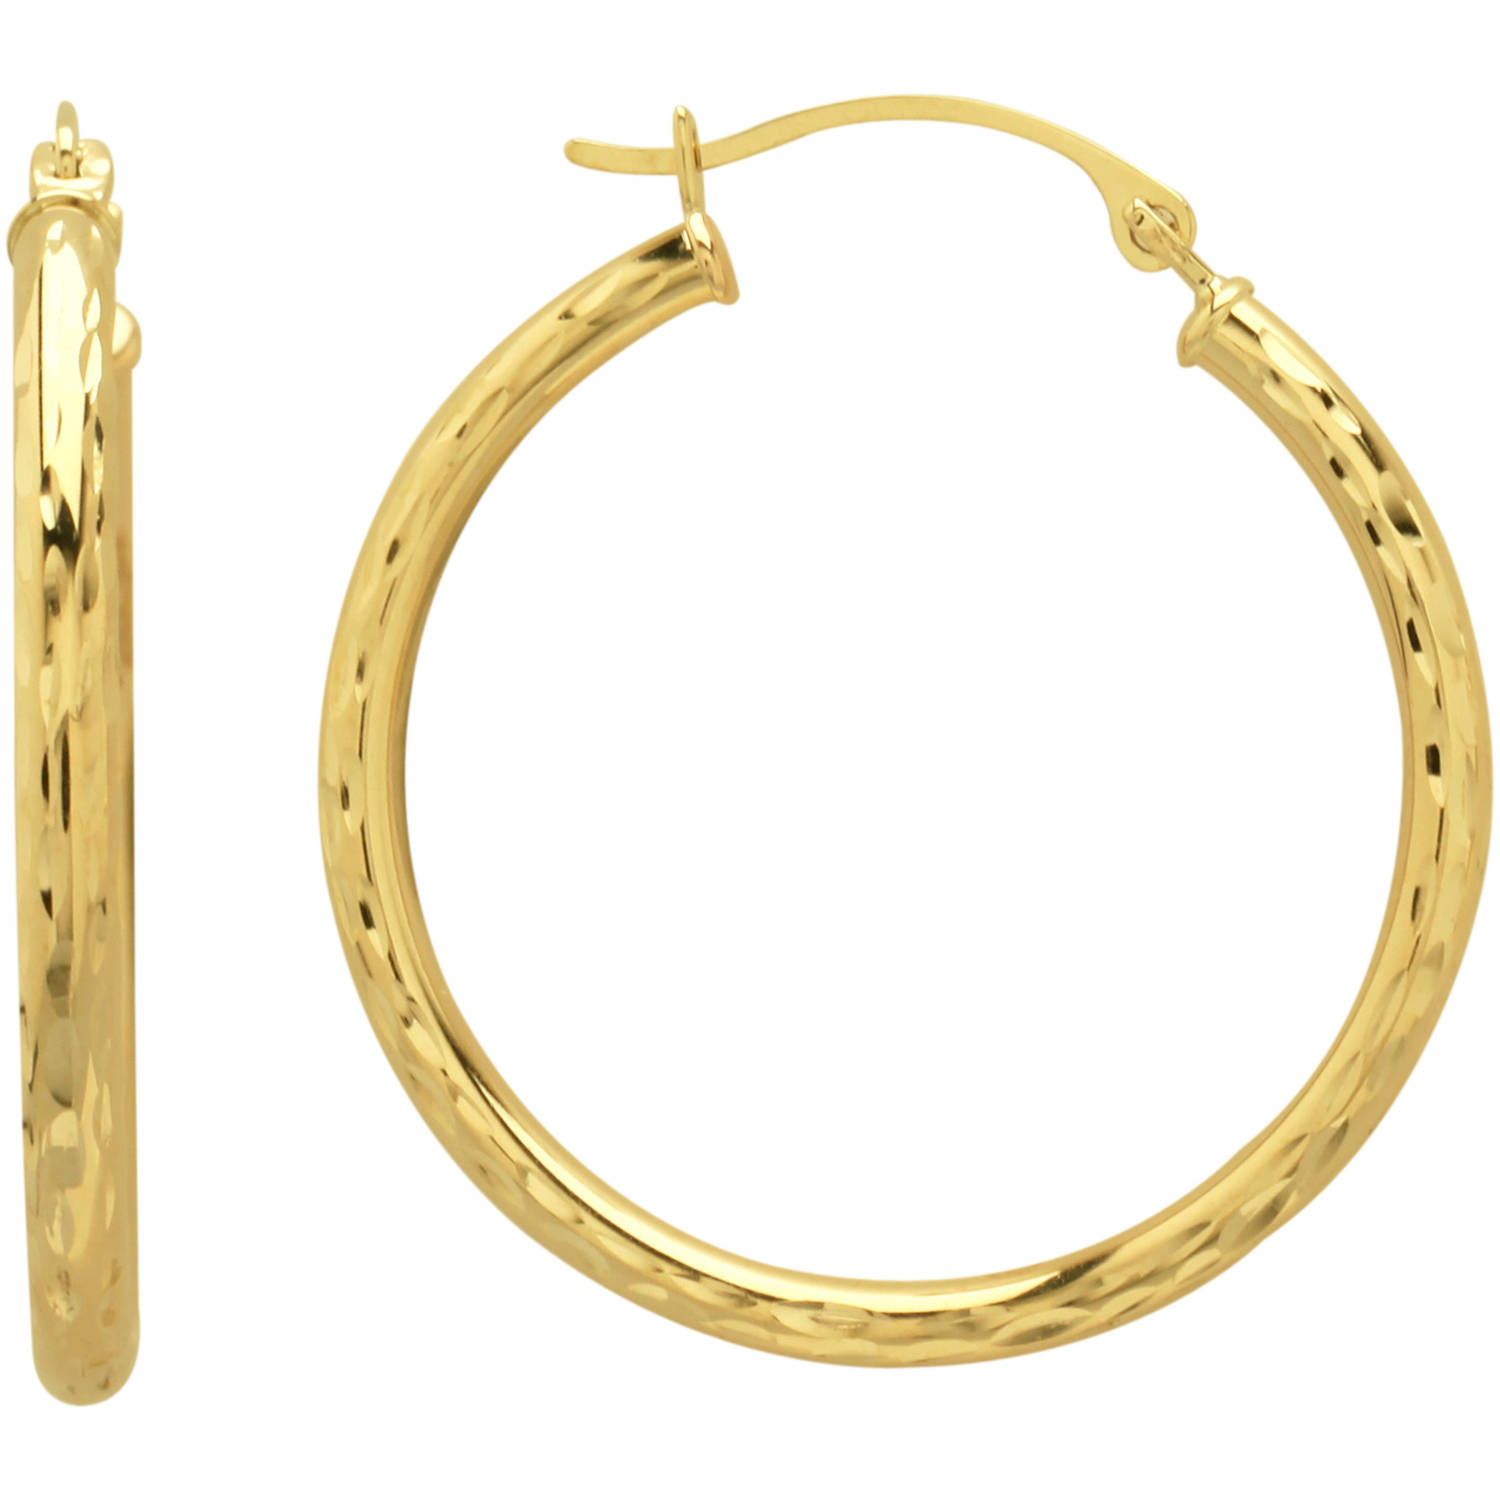 charriol and gold jewellery earrings the hoop phillippe atique products diamond